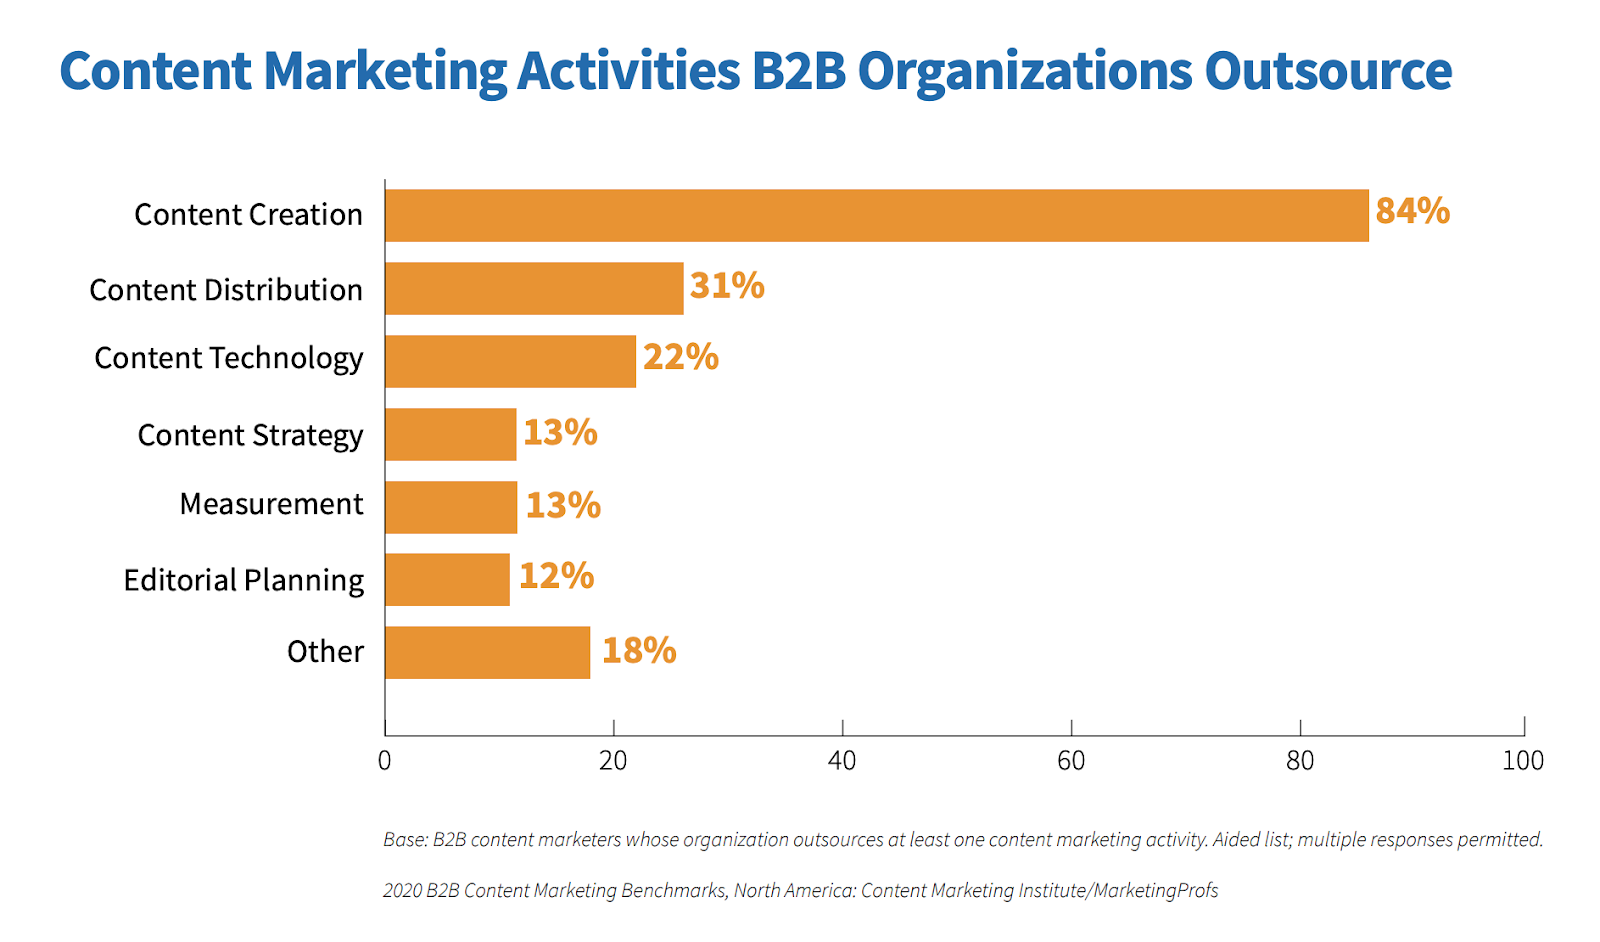 Content marketing activities that B2B organizations outsource